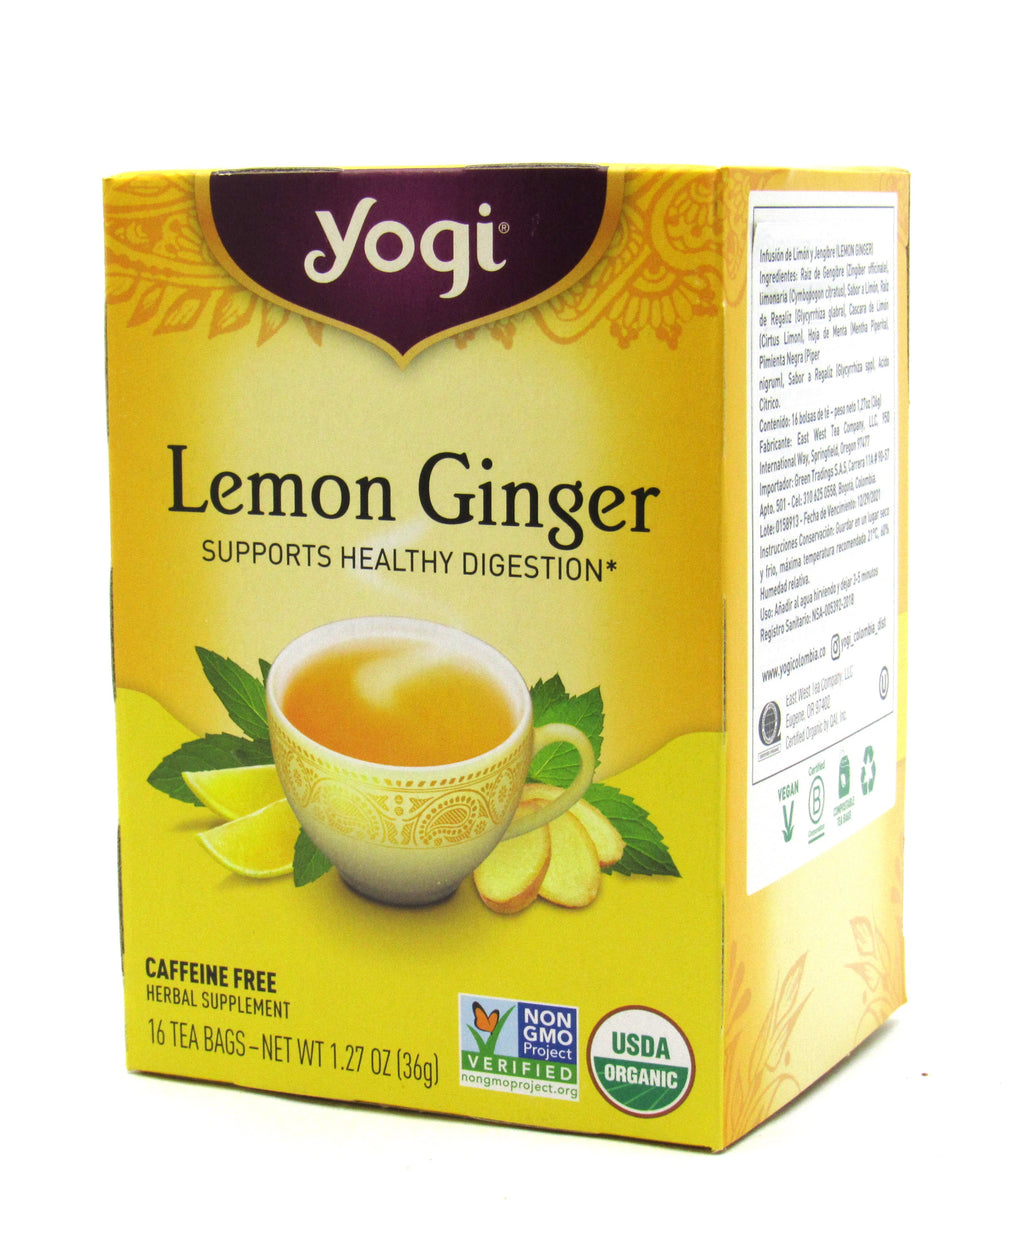 Te yogi lemon ginger